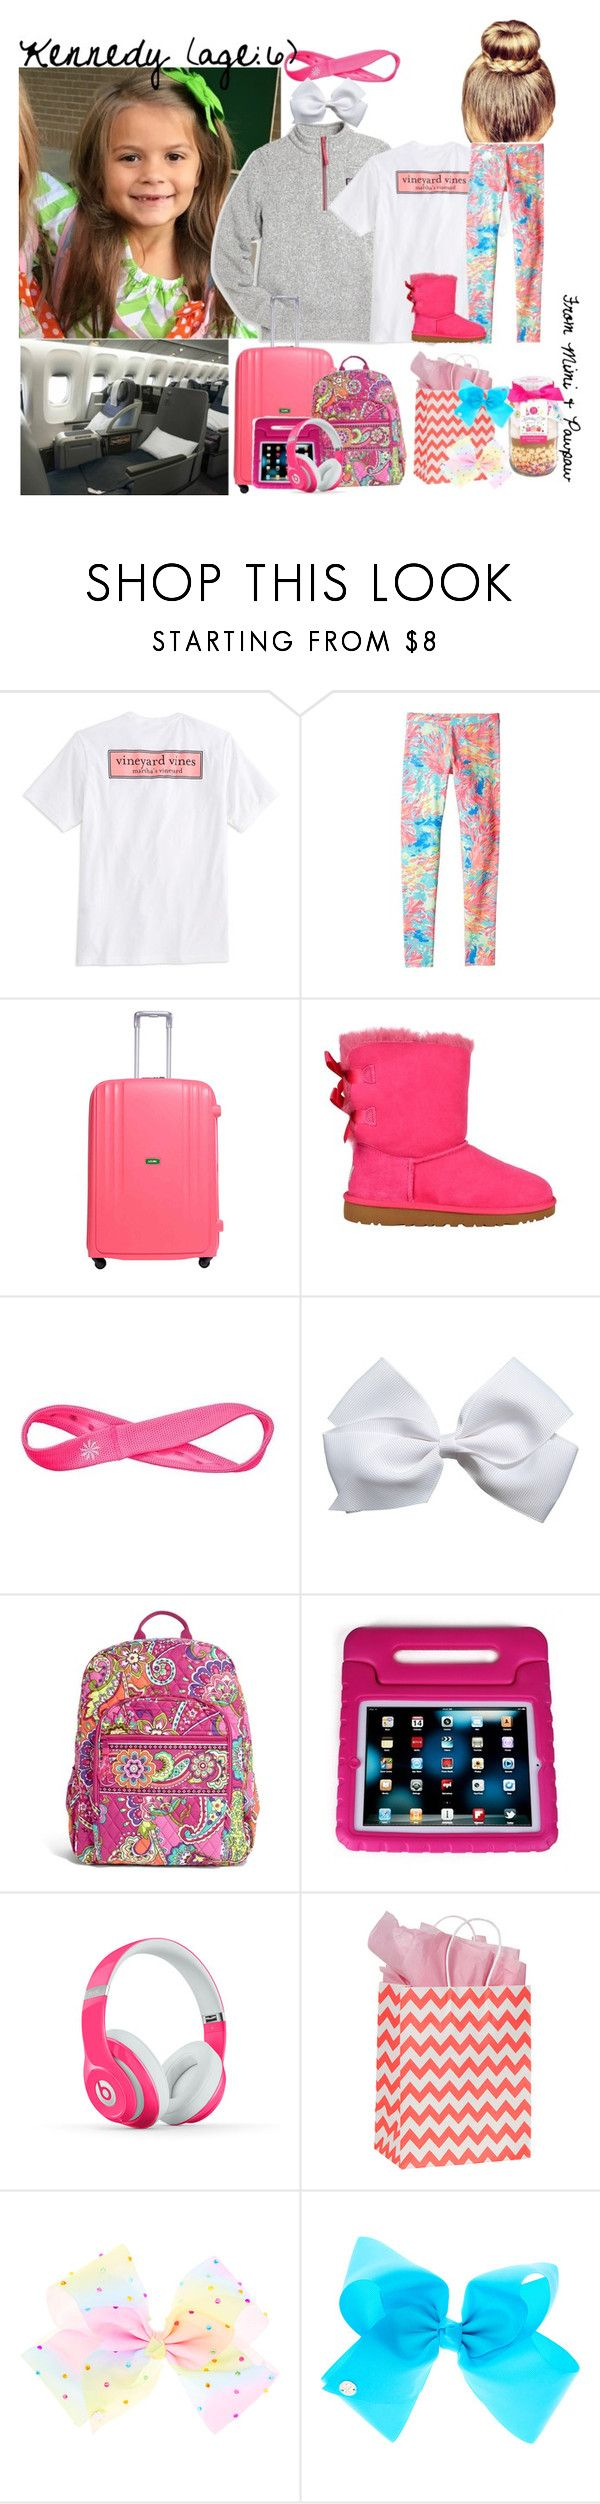 """""""Kennedy // Rainy Day Flight Home 🌧"""" by dream-families ❤ liked on Polyvore featuring Vineyard Vines, Lilly Pulitzer, Lojel, UGG, Athleta, Vera Bradley, Handle, Beats by Dr. Dre and TheRogersFamily"""